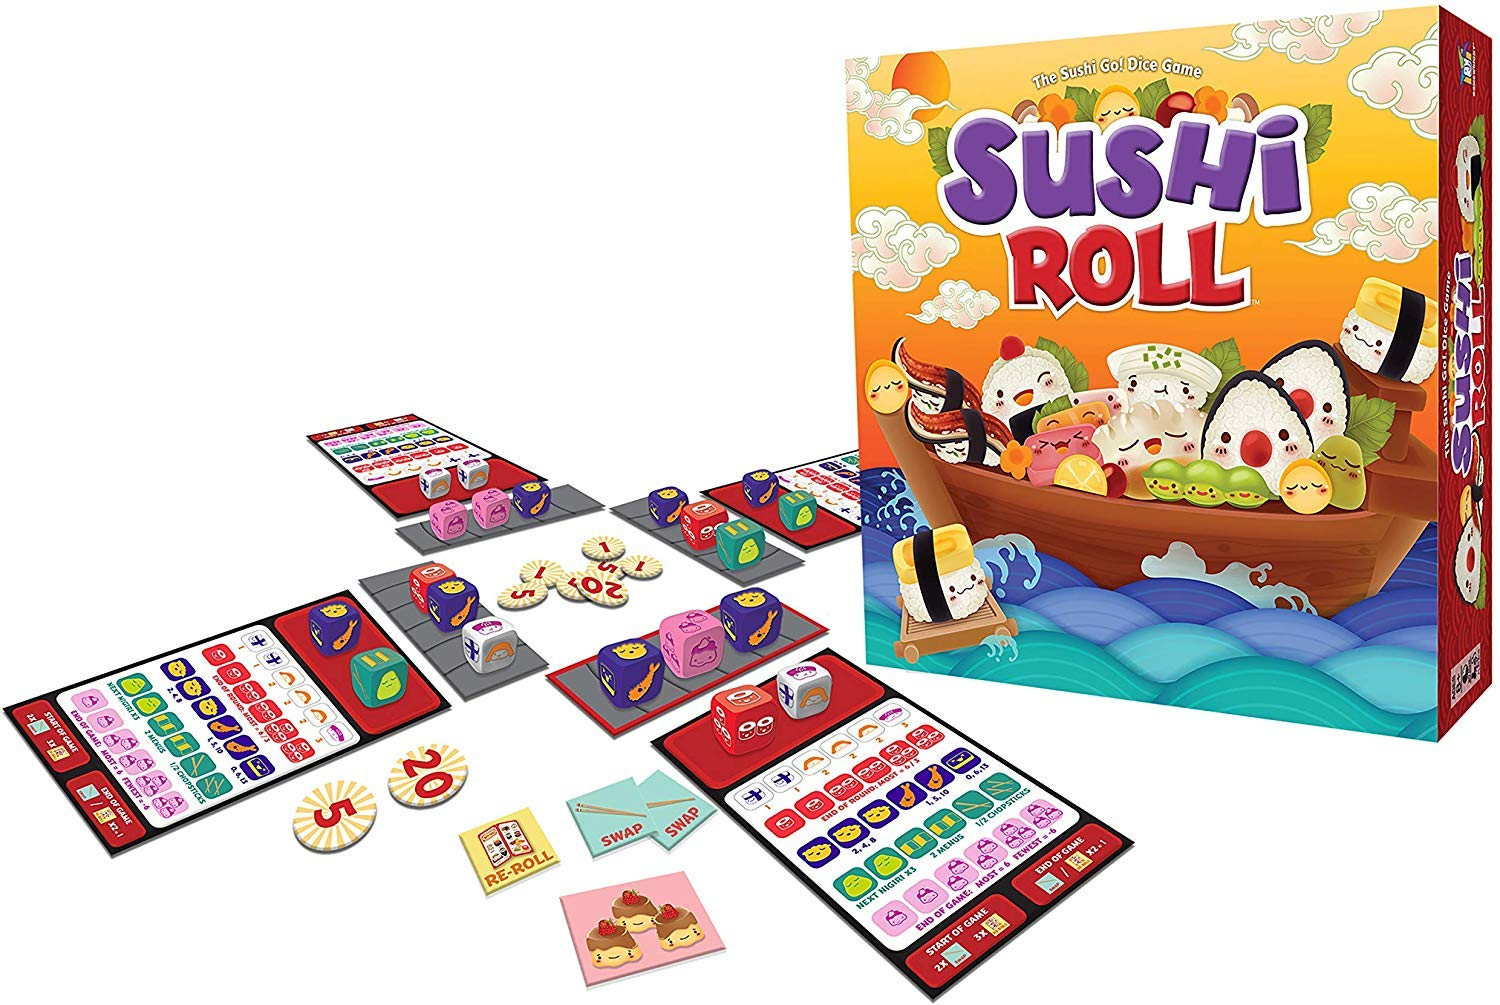 Sushi Roll - The Sushi Go! Dice Game by Gamewright